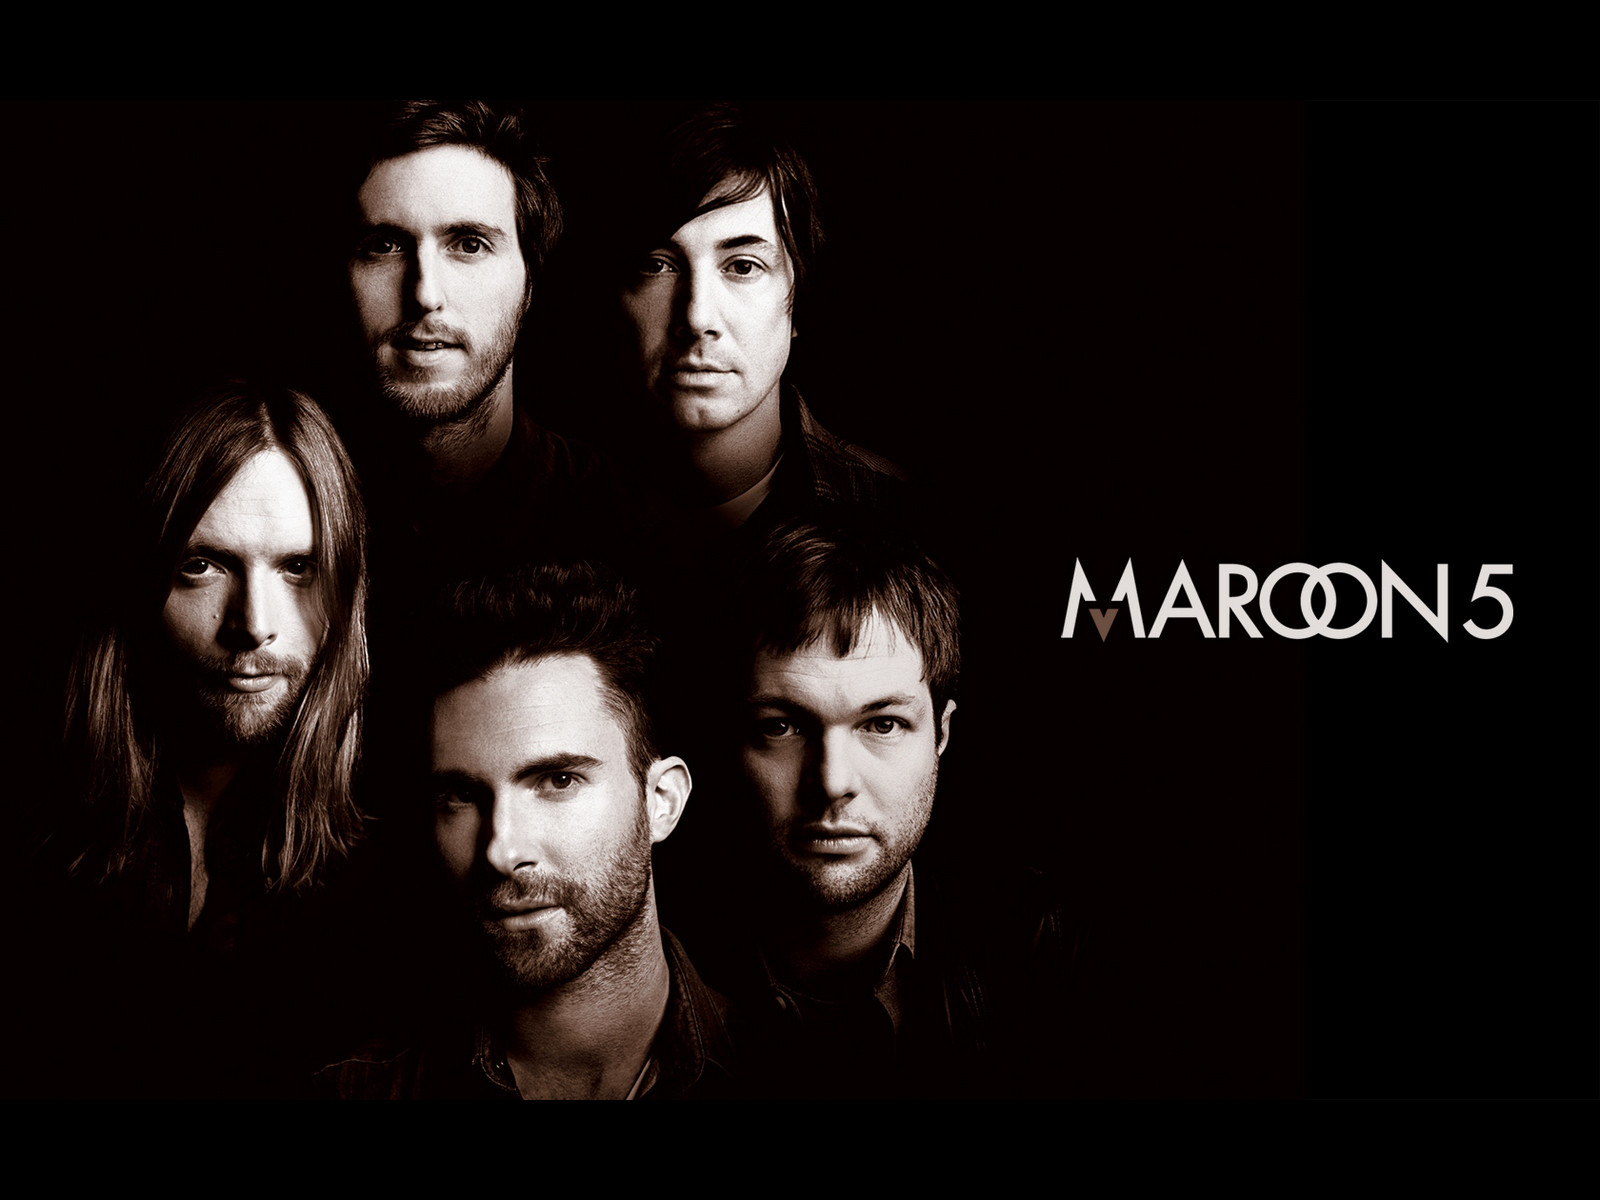 Maroon 5 Wallpaper - Original size, download now.